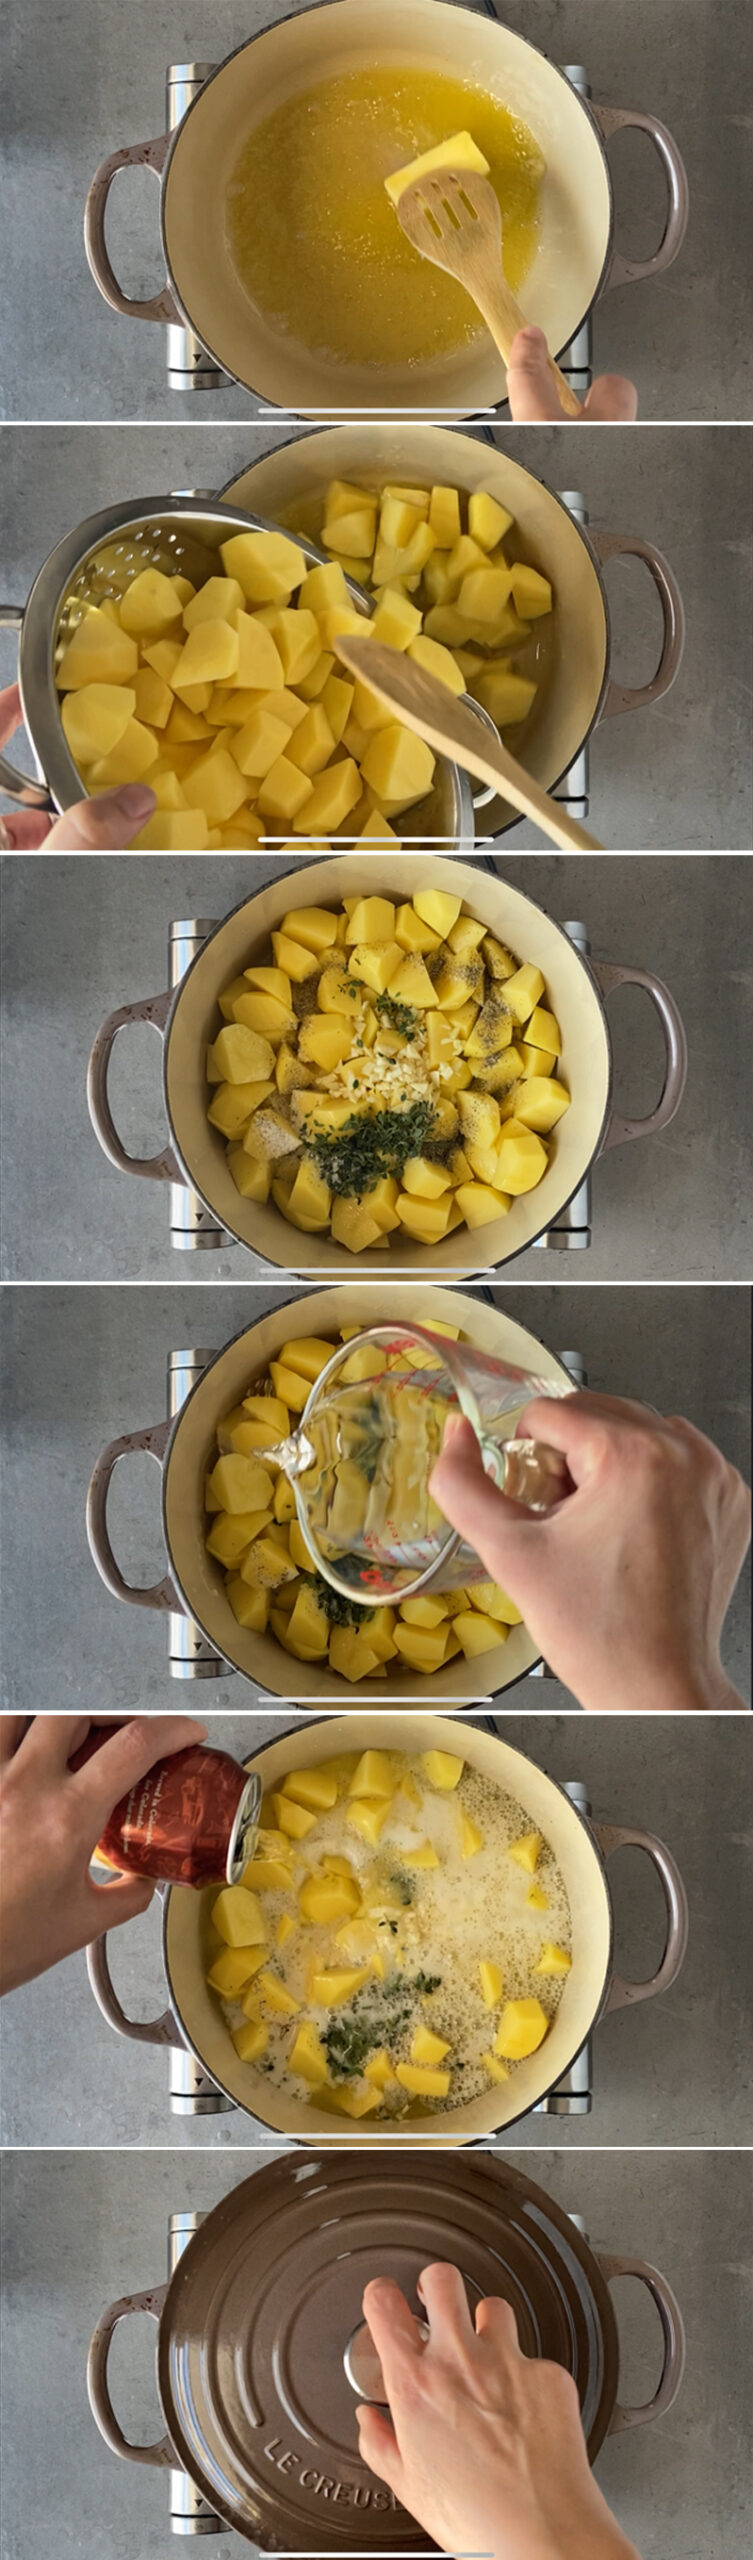 Steps to make beer potatoes 1